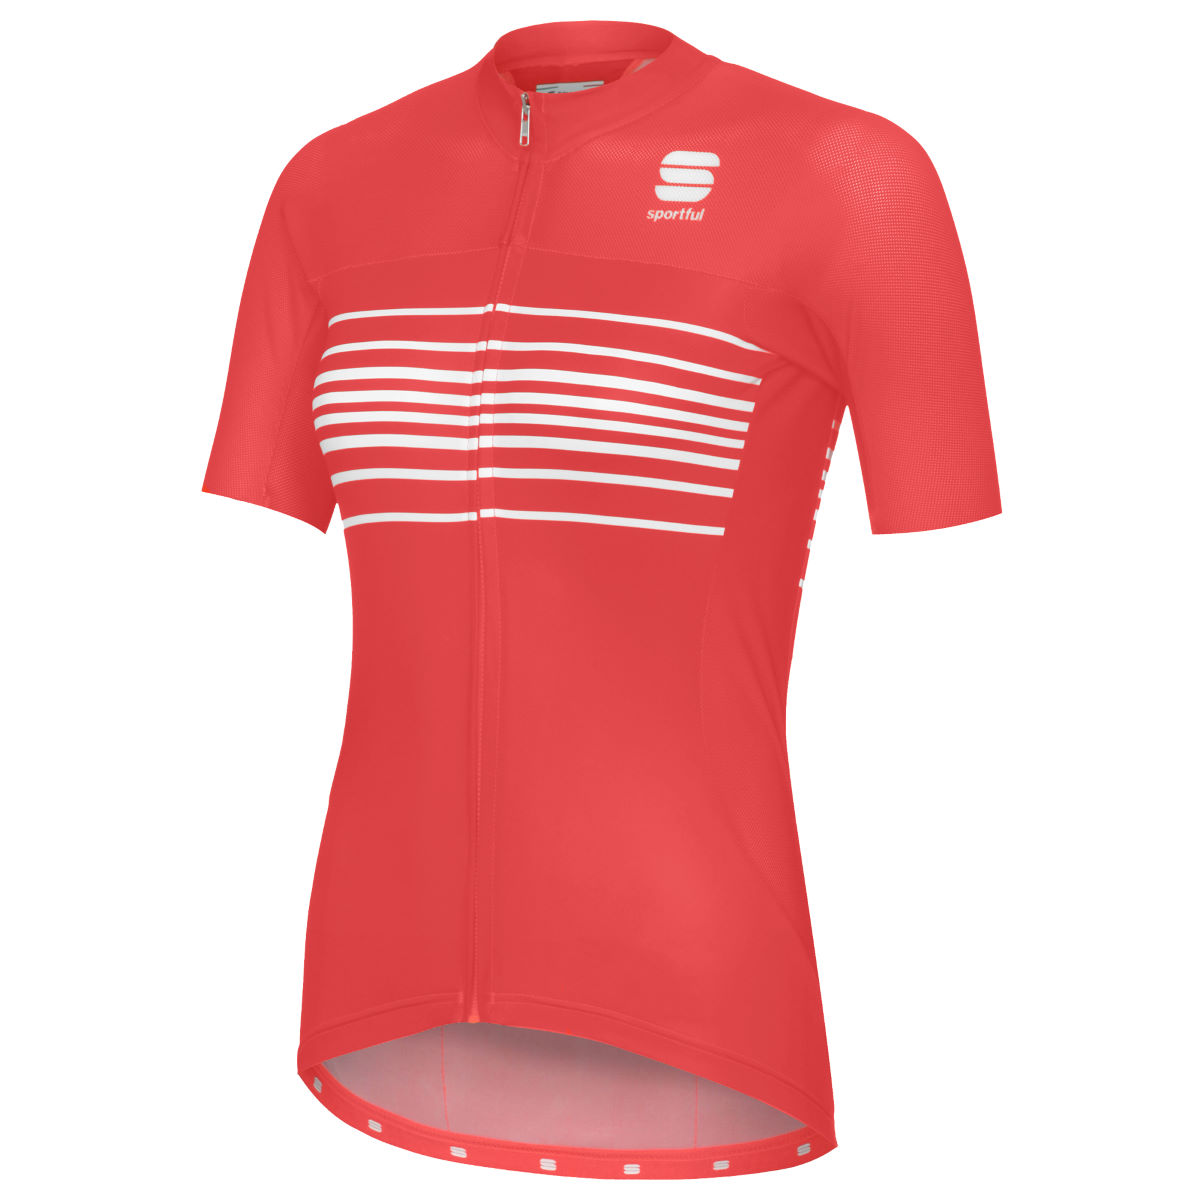 Maillot Femme Sportful Exclusive Stripe BodyFit Team - M Fluro